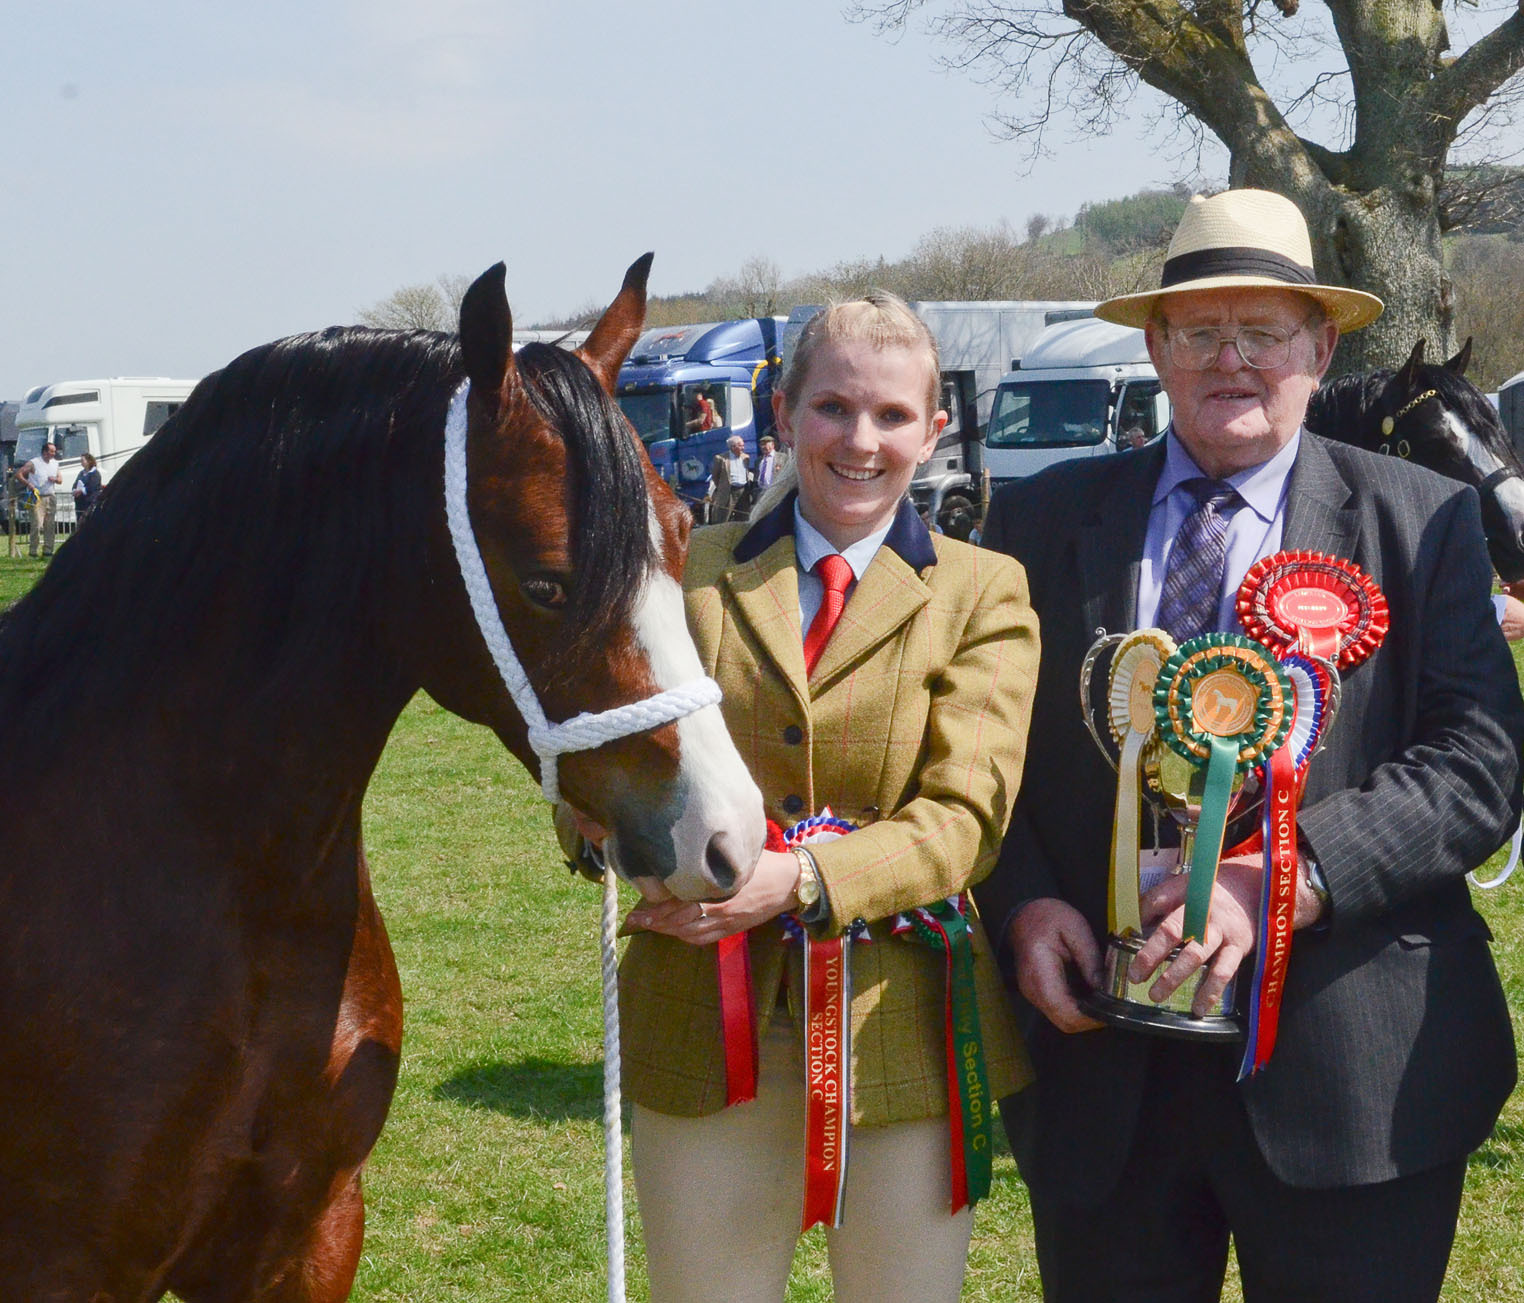 Winner of the Welsh Pony (Cob type) Section C Stallion Standing in Wales was TYNGWNDWN LION KING from Tyngwndwn Stud, Llanon and the Show President John Green presents her with the trophy .